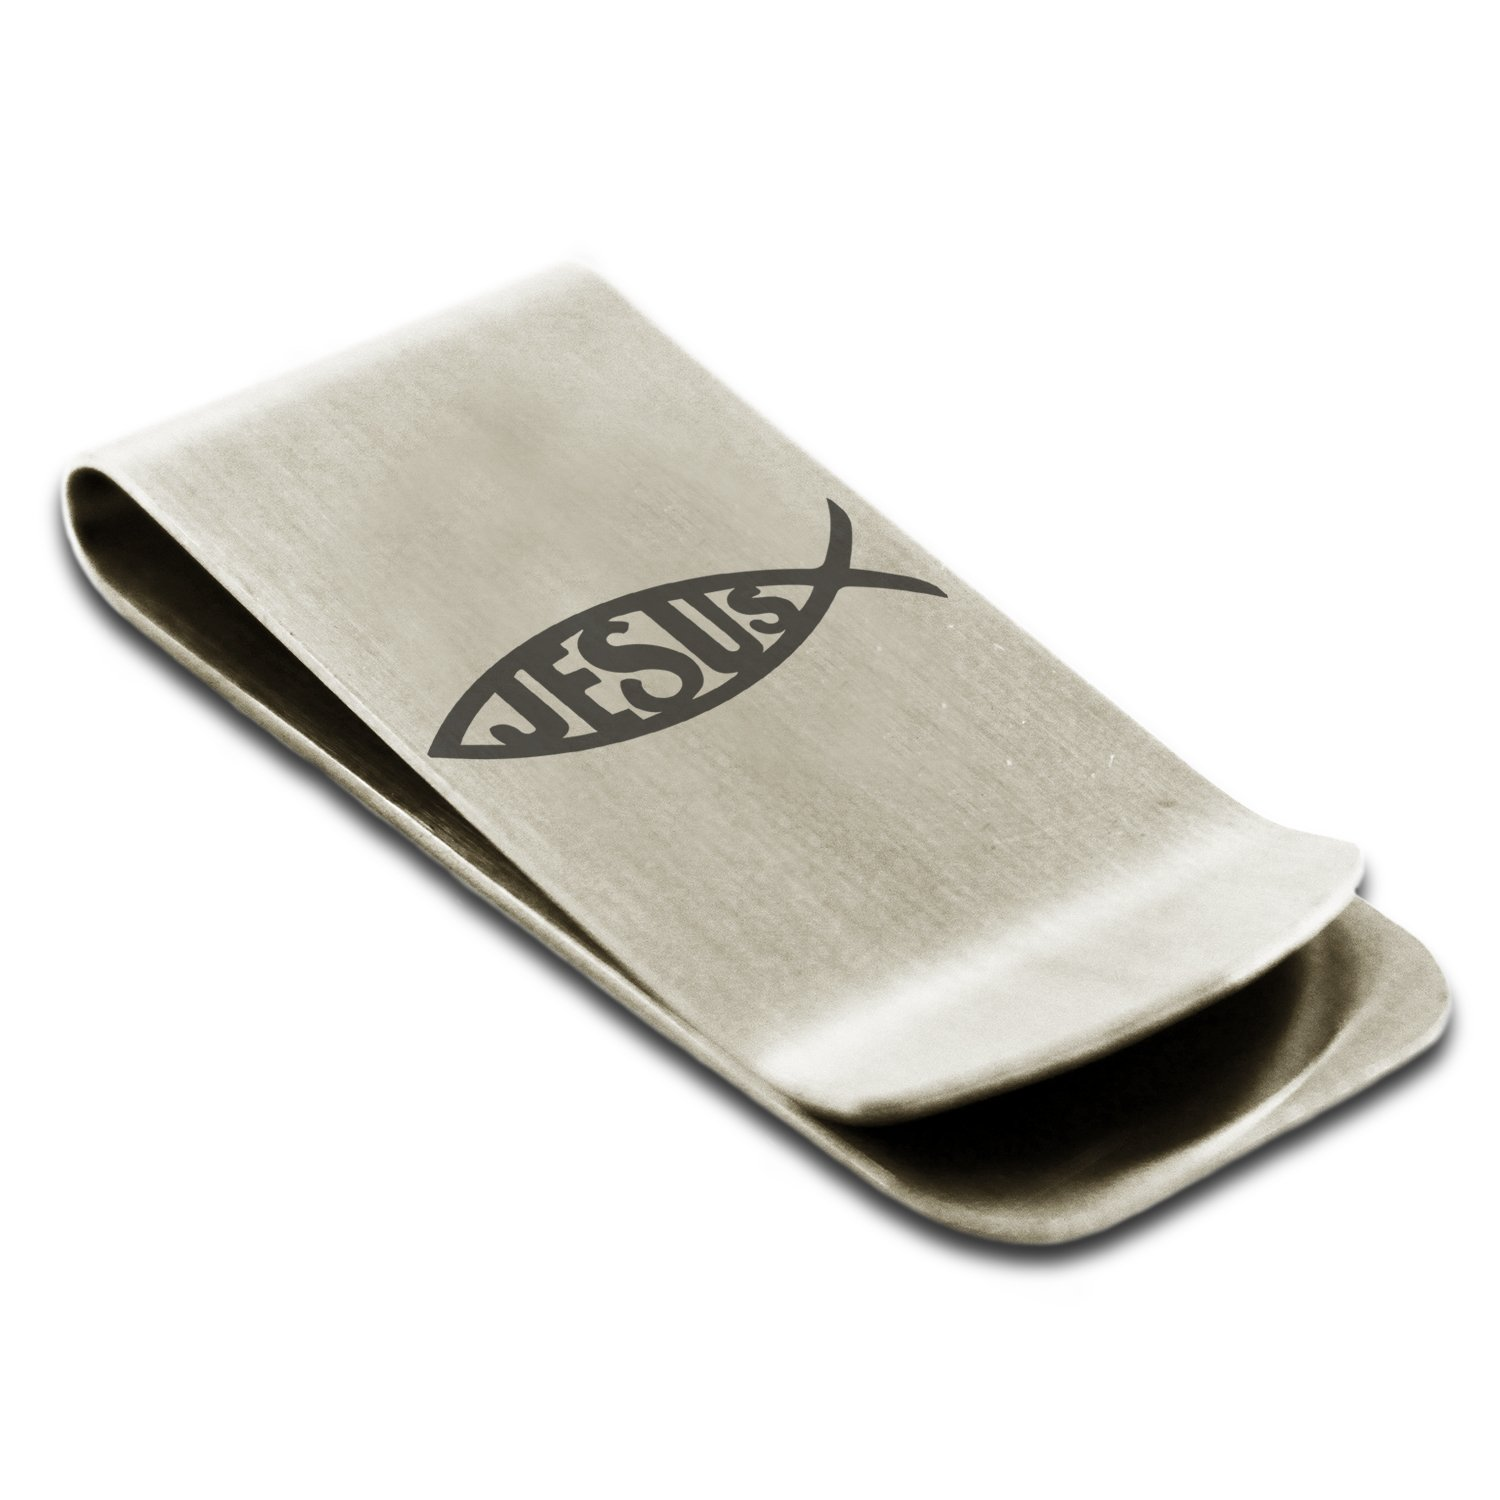 Stainless Steel Ichthus Jesus Fish Symbol Engraved Money Clip Credit Card Holder